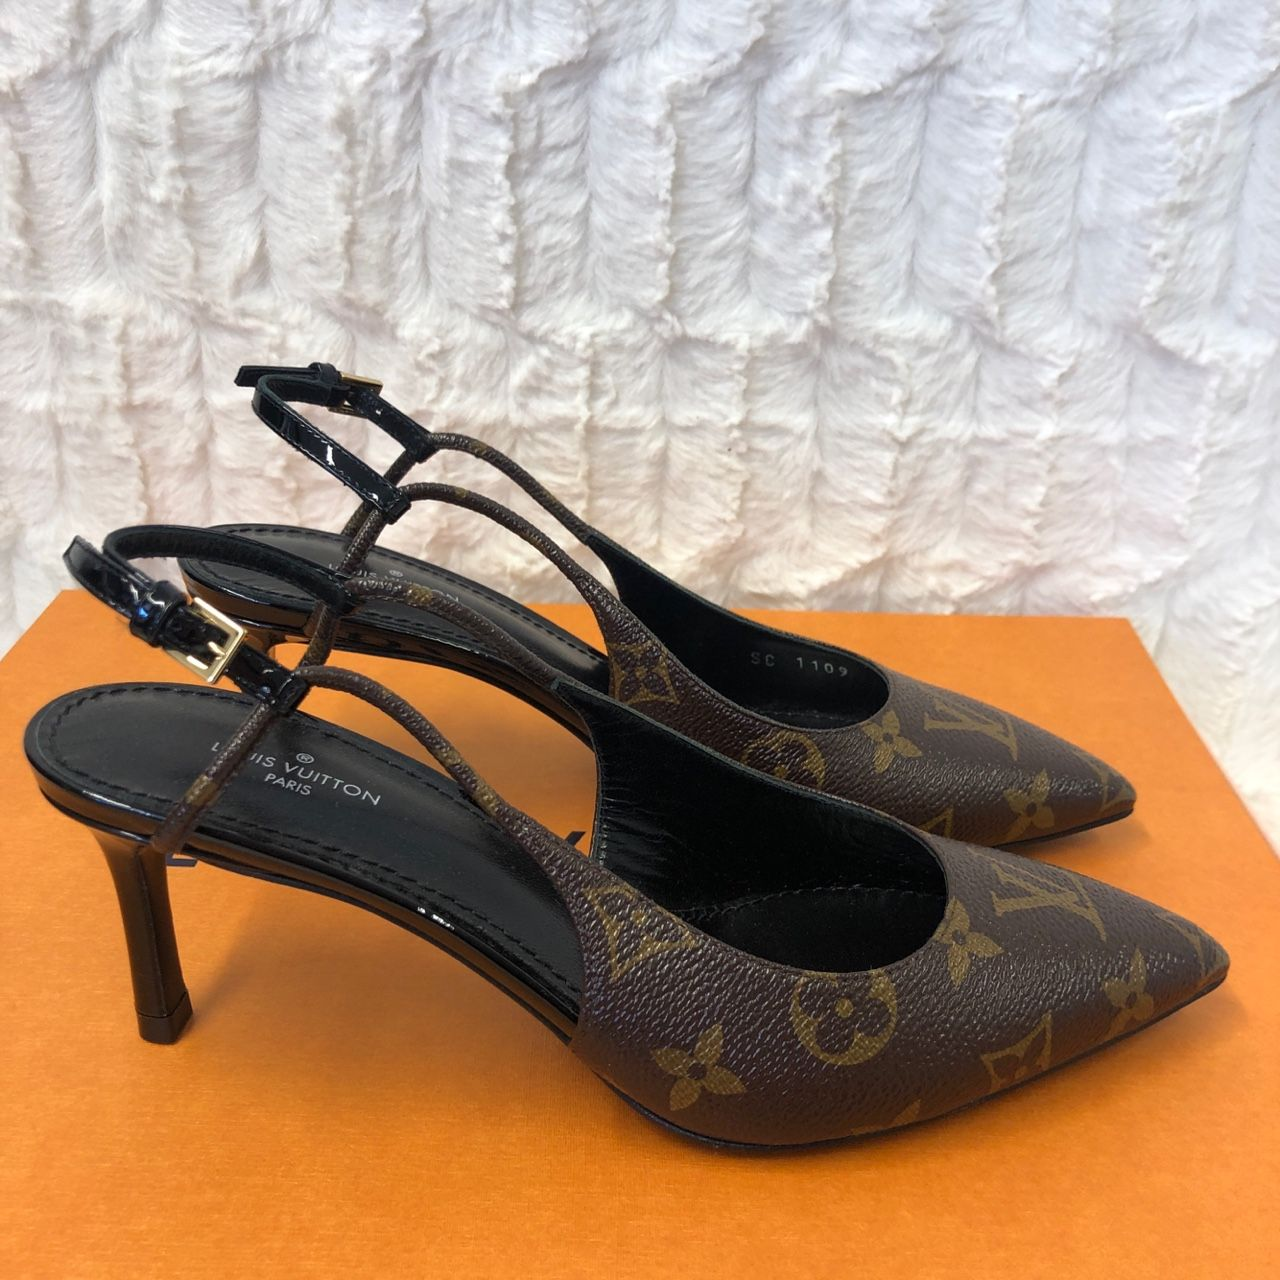 Louis Vuitton Cherie Slingback Pumps 1A5BPP